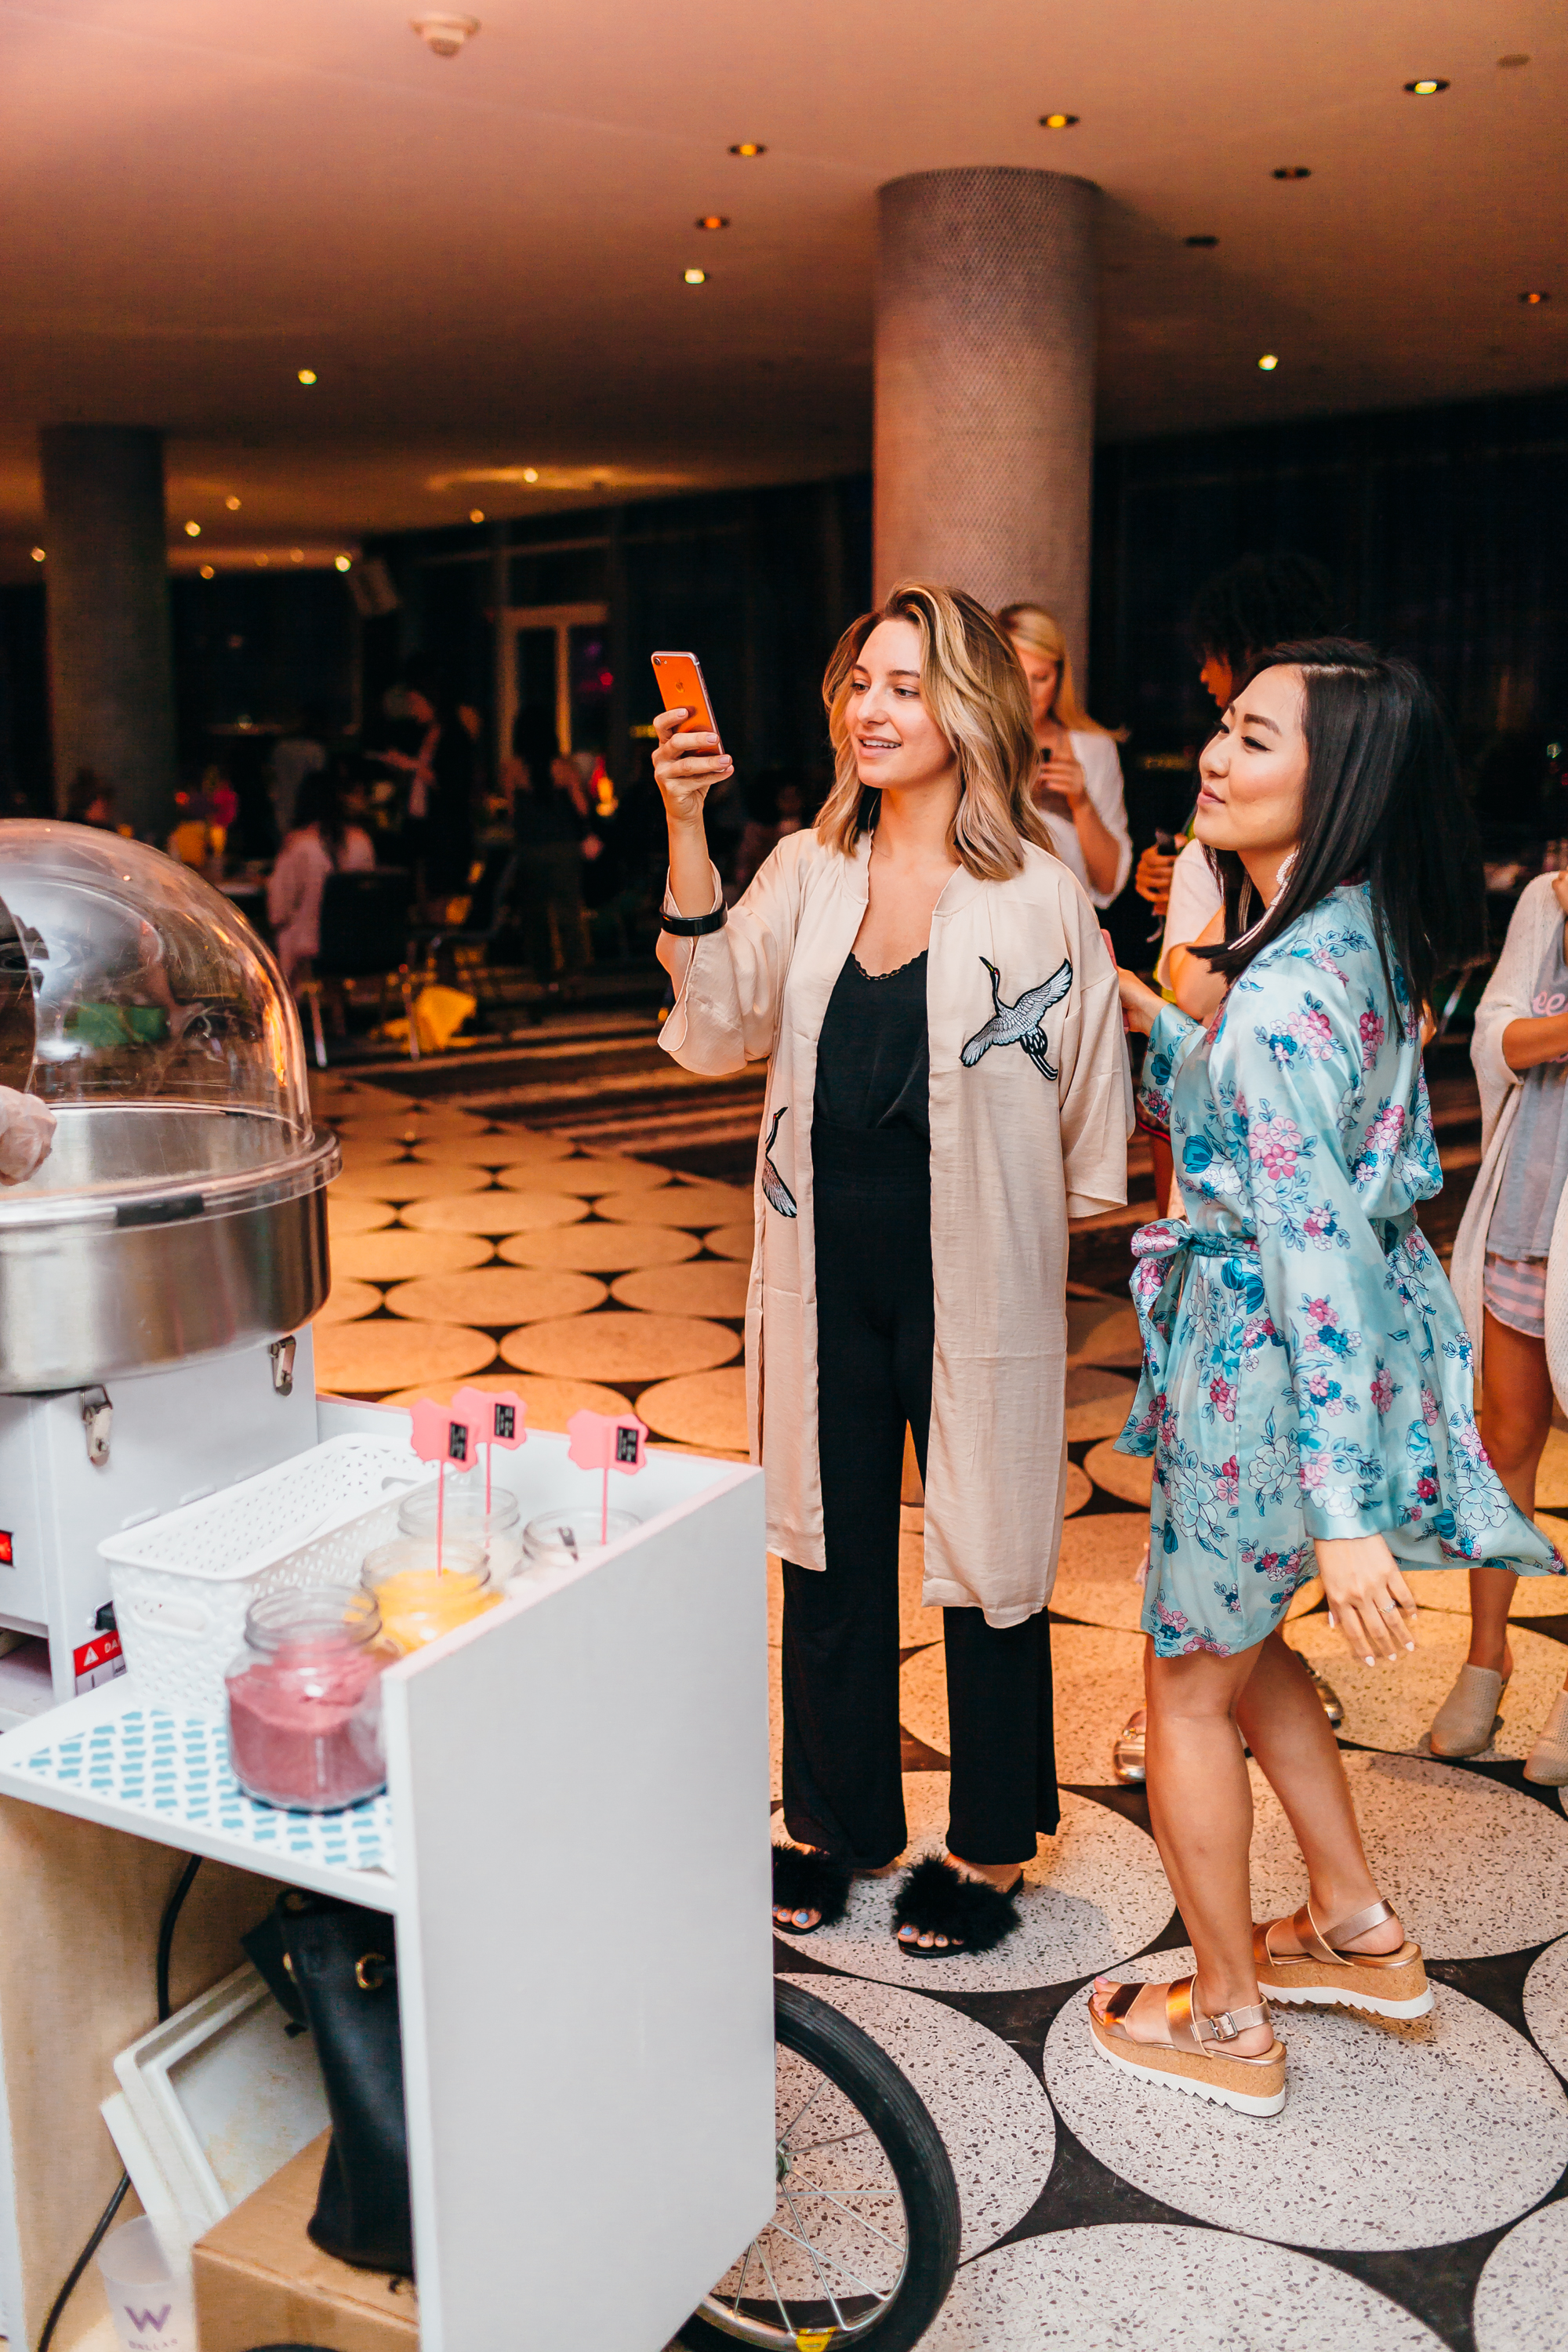 bumble-bff-dallas-launch-event-6562.jpg